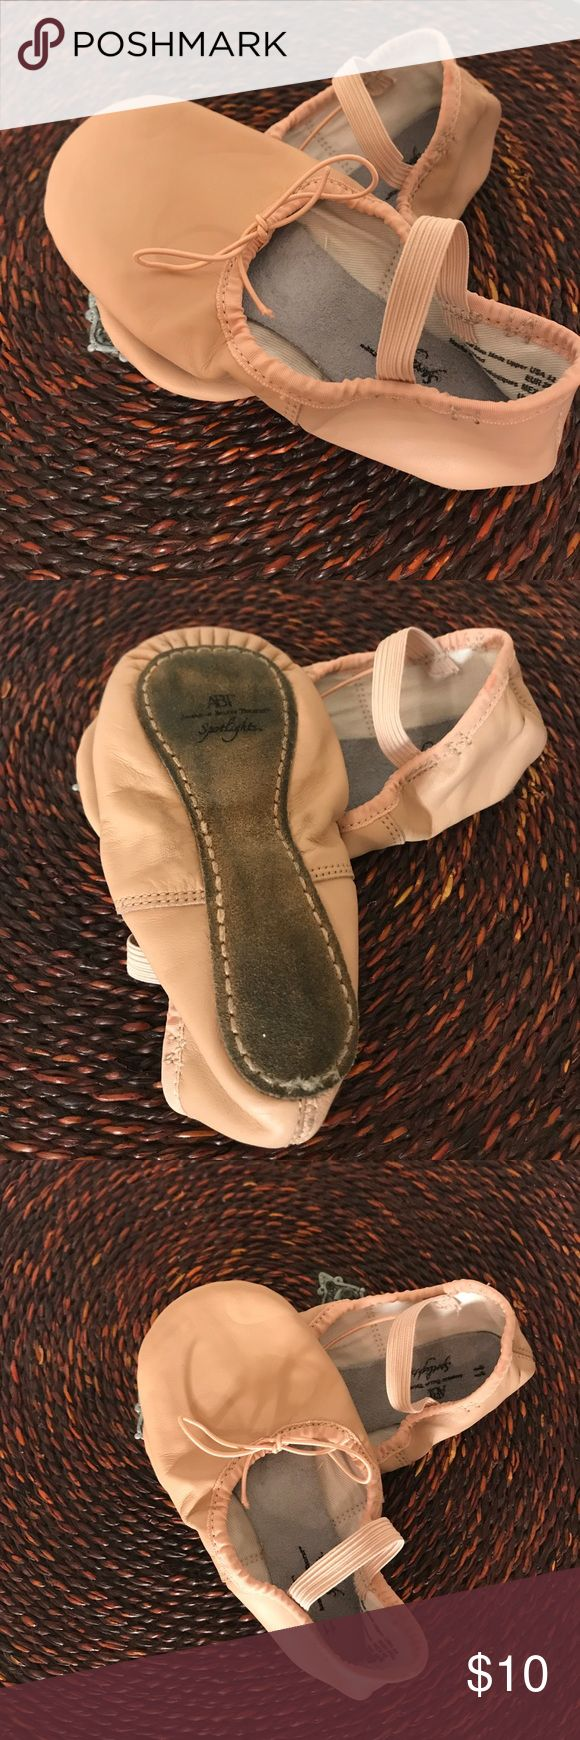 Ballet Shoes gently used ballet shoes. American Ballet Theater Shoes Slippers